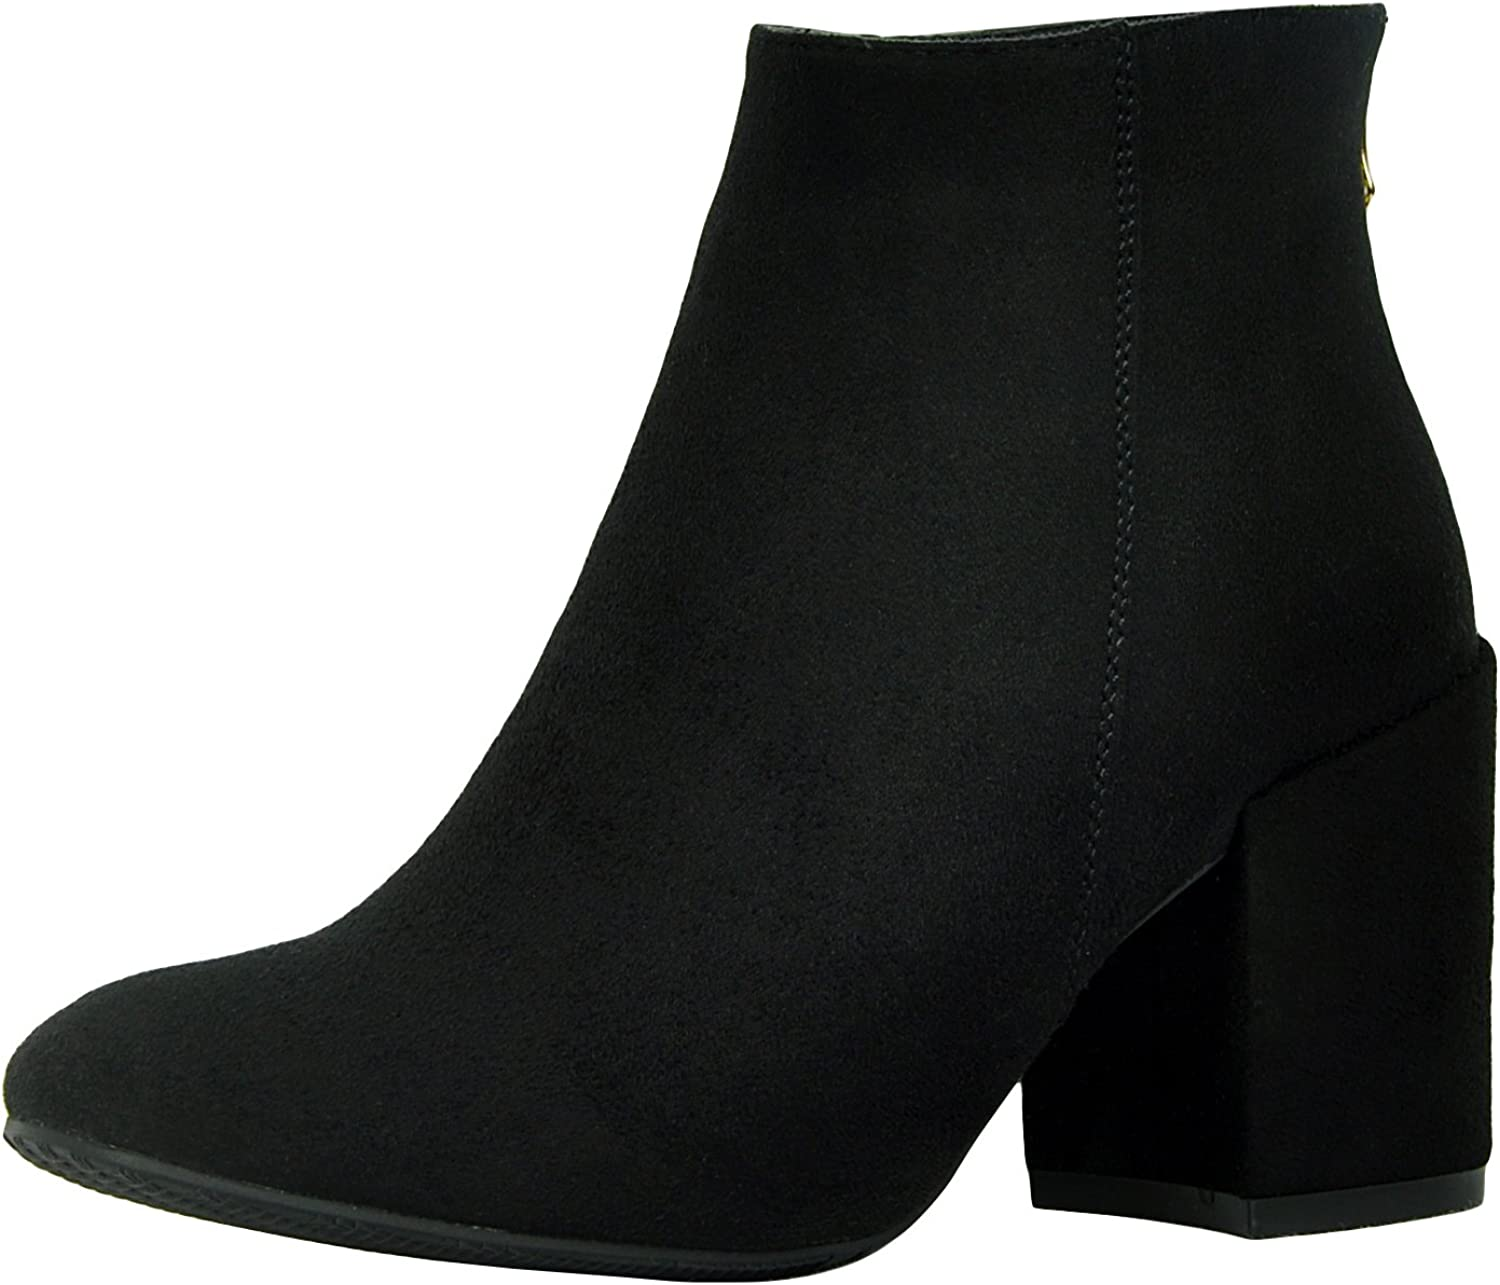 Refresh Footwear Women's Classic Closed Toe Chunky Block Heel Ankle Bootie